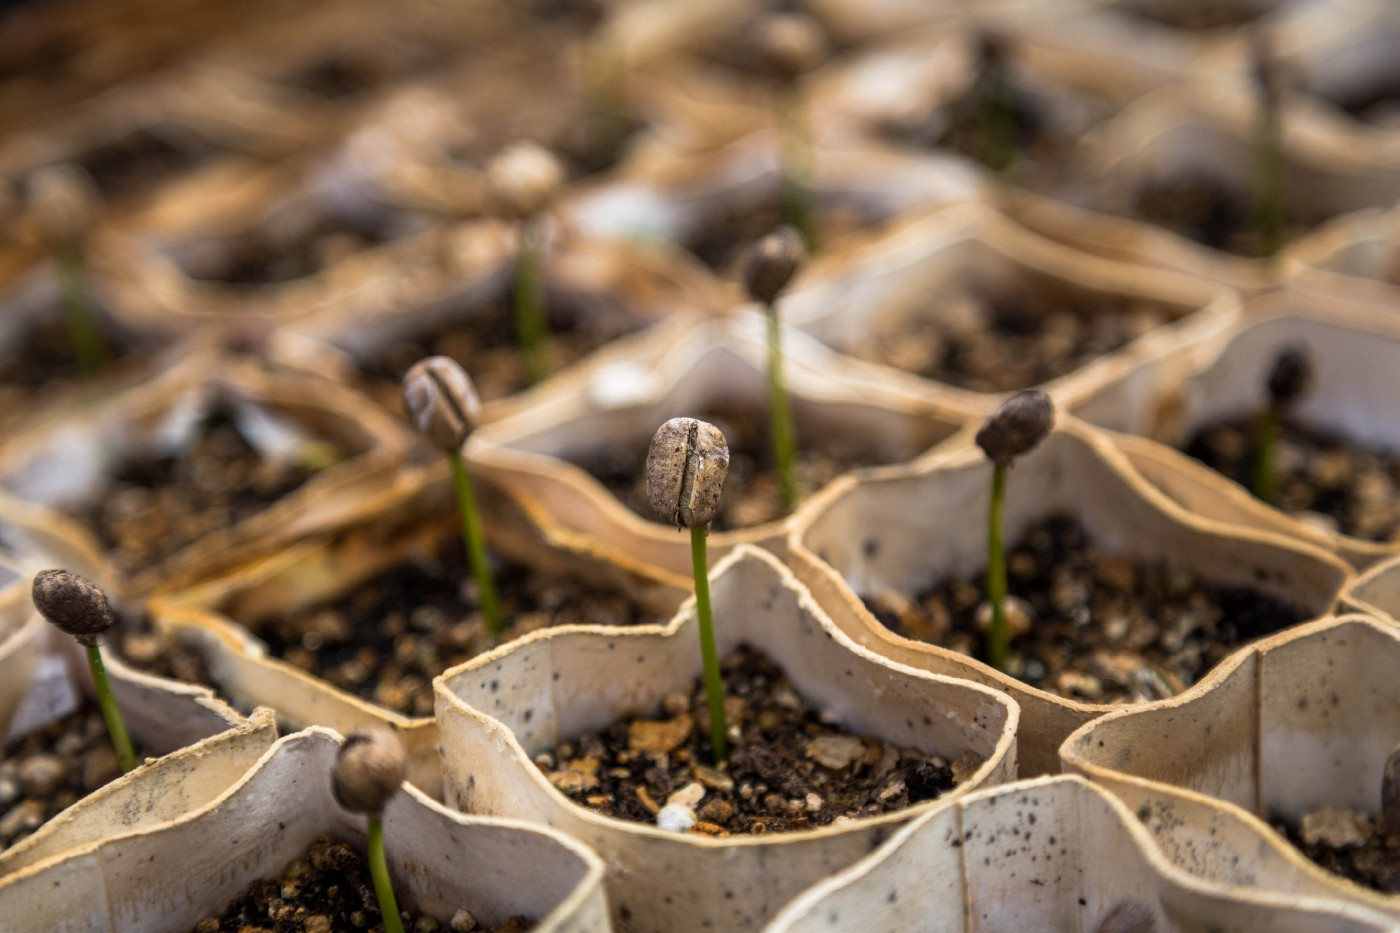 Coffee seedlings sprouting from small cloth bags.